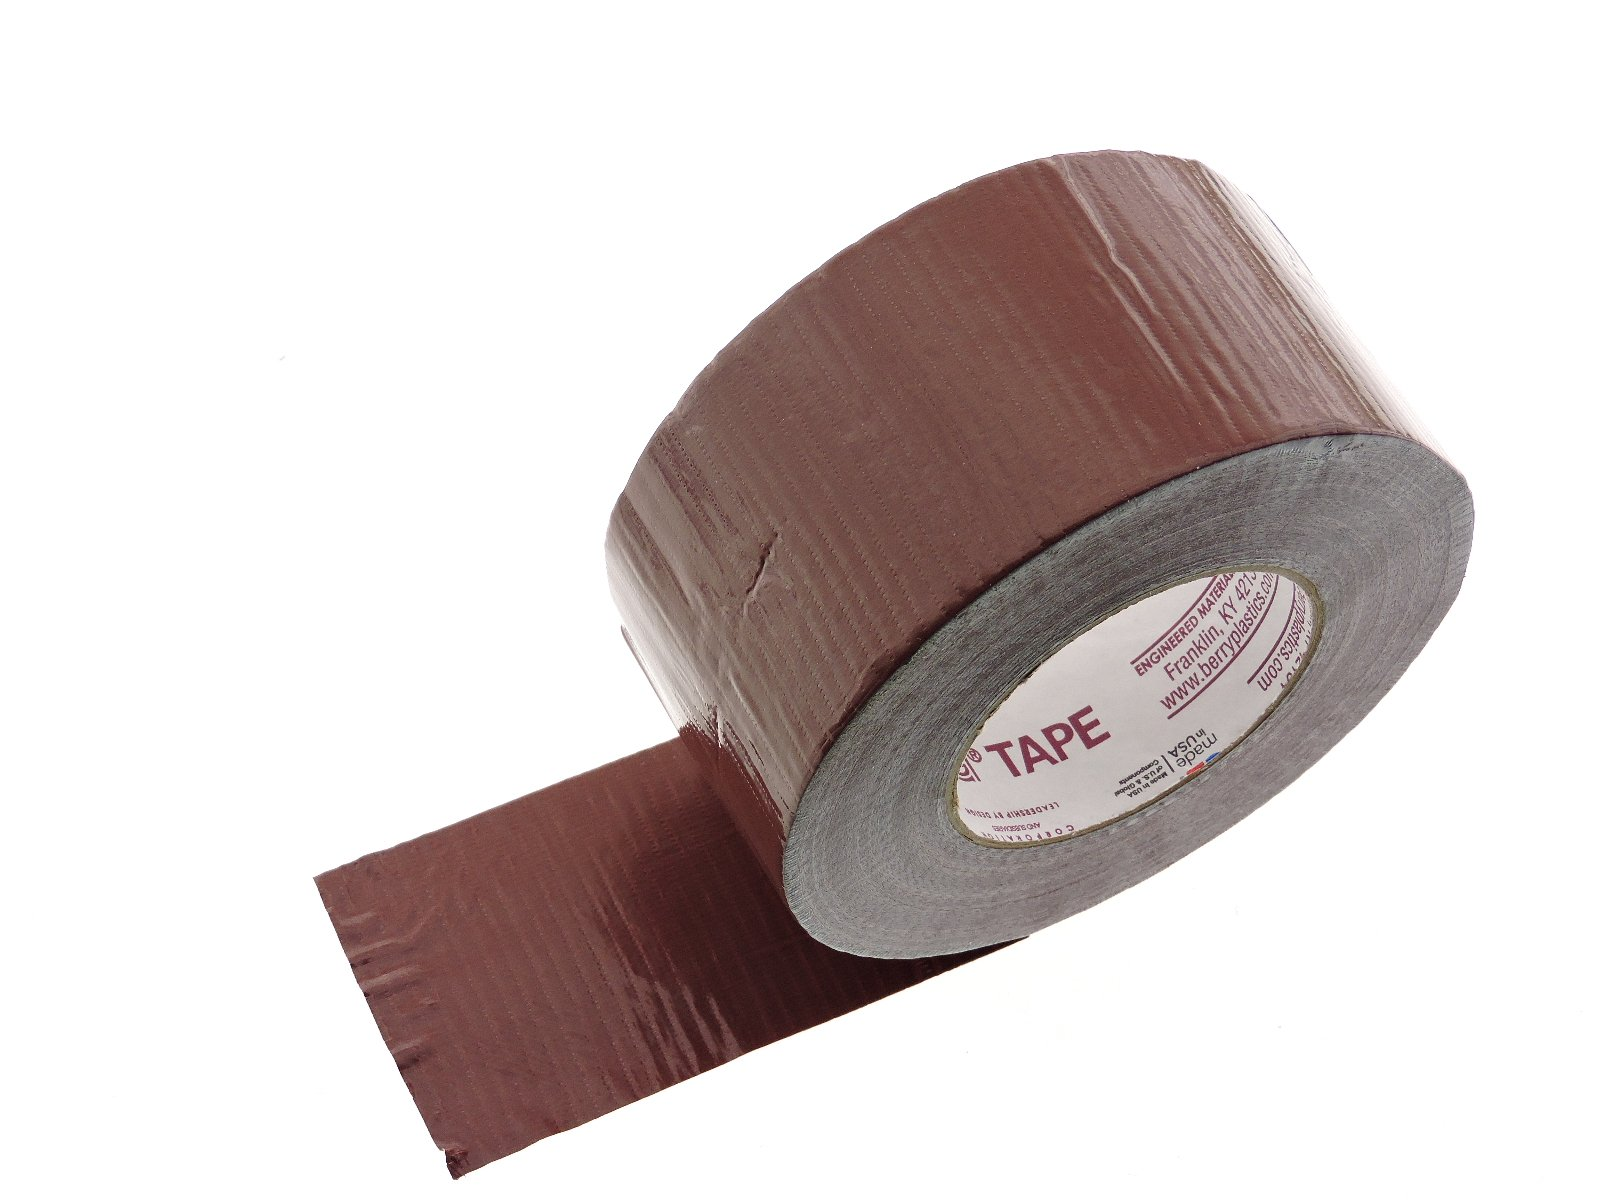 3'' in Brown Duct Tape Nashua 2280 Heavy 9 mil Cloth Reinforced PE Back Duct Tape Water UV Resistant Hand Tearable 60yd USA Made 70 oz inch adhesion 20% elongation 24 lb in tensile strength